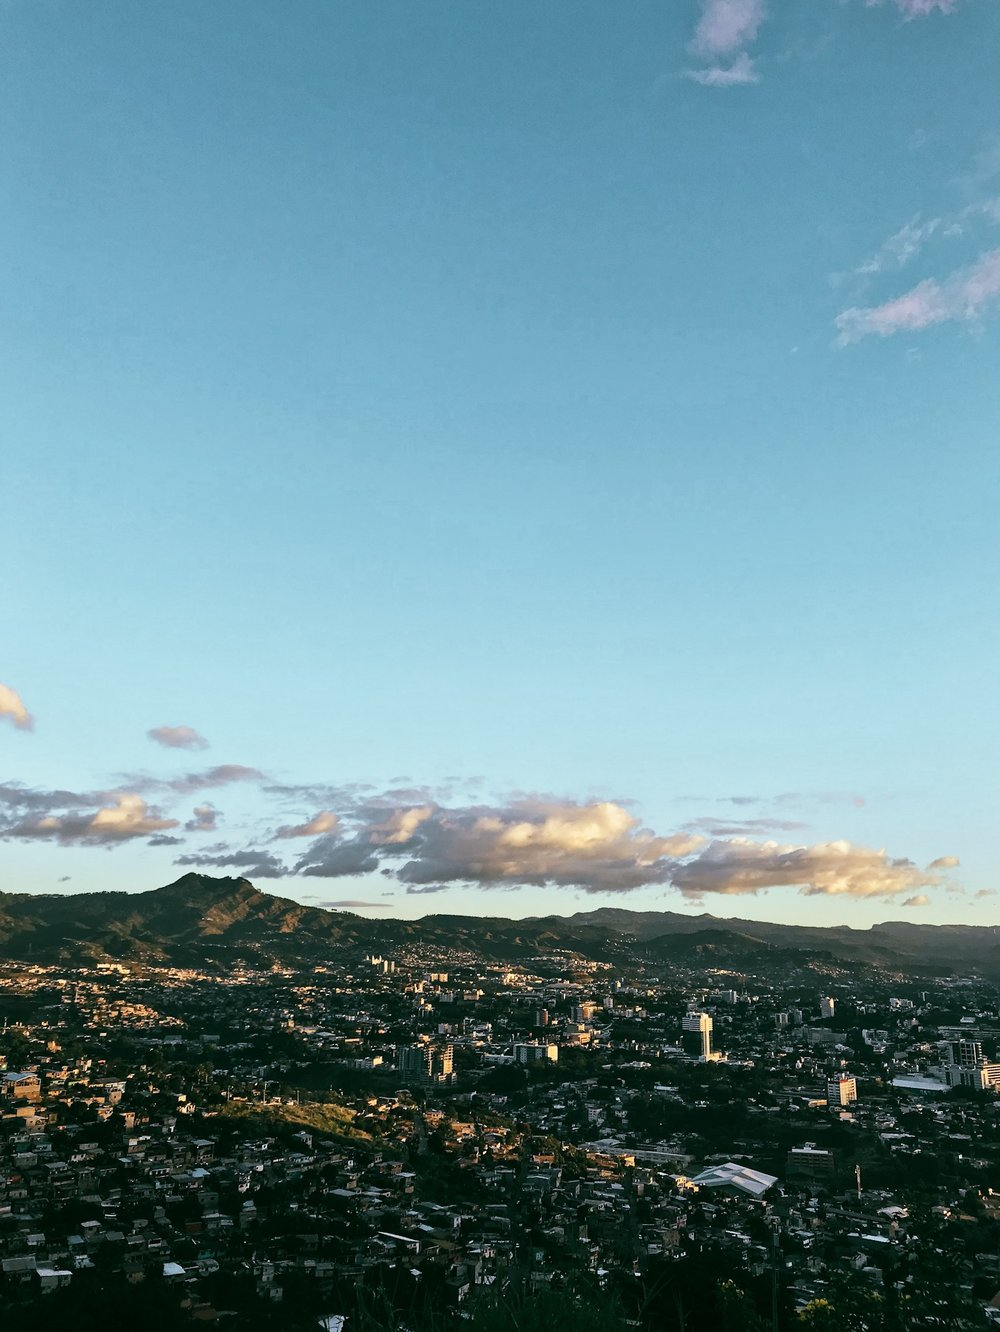 View of Tegucigalpa, taken several days after the elections.